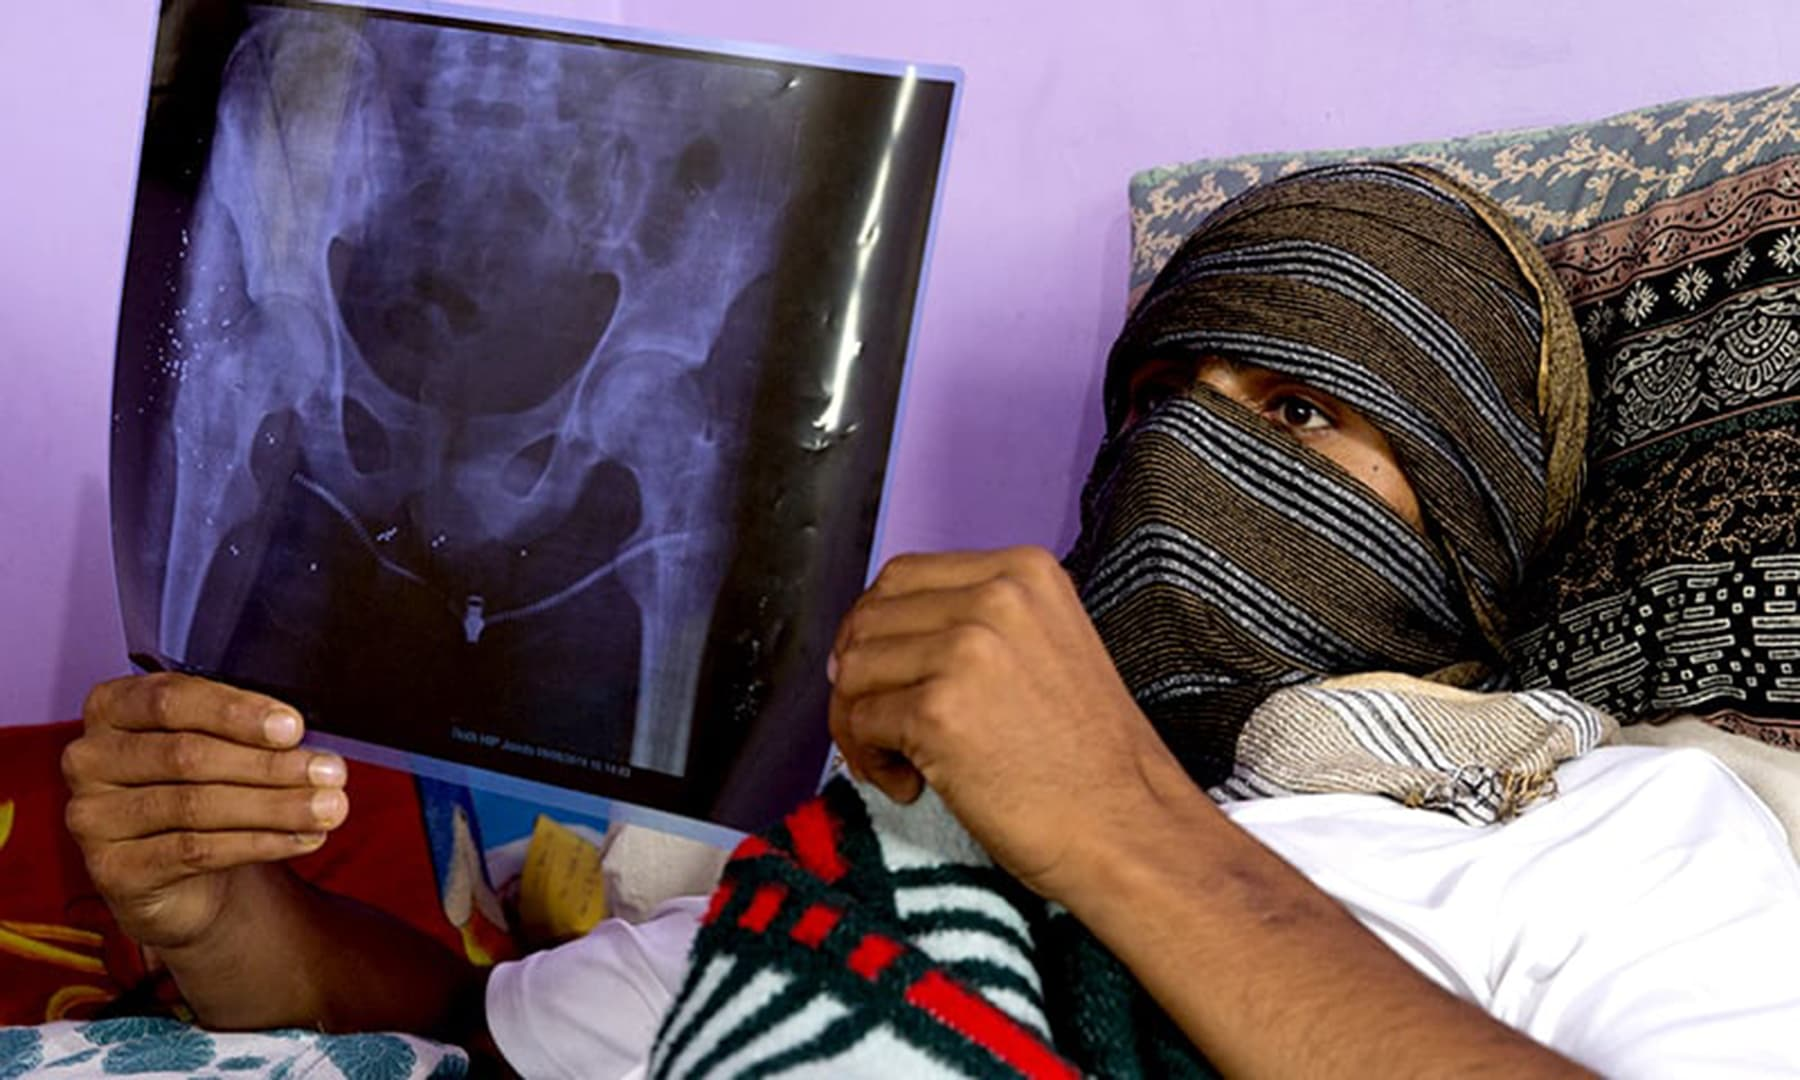 A Kashmiri boy, who was injured a week prior, holds up an X-Ray showing pellet injuries in his leg, as he recovers at his home in Srinagar, on August 17. — AP